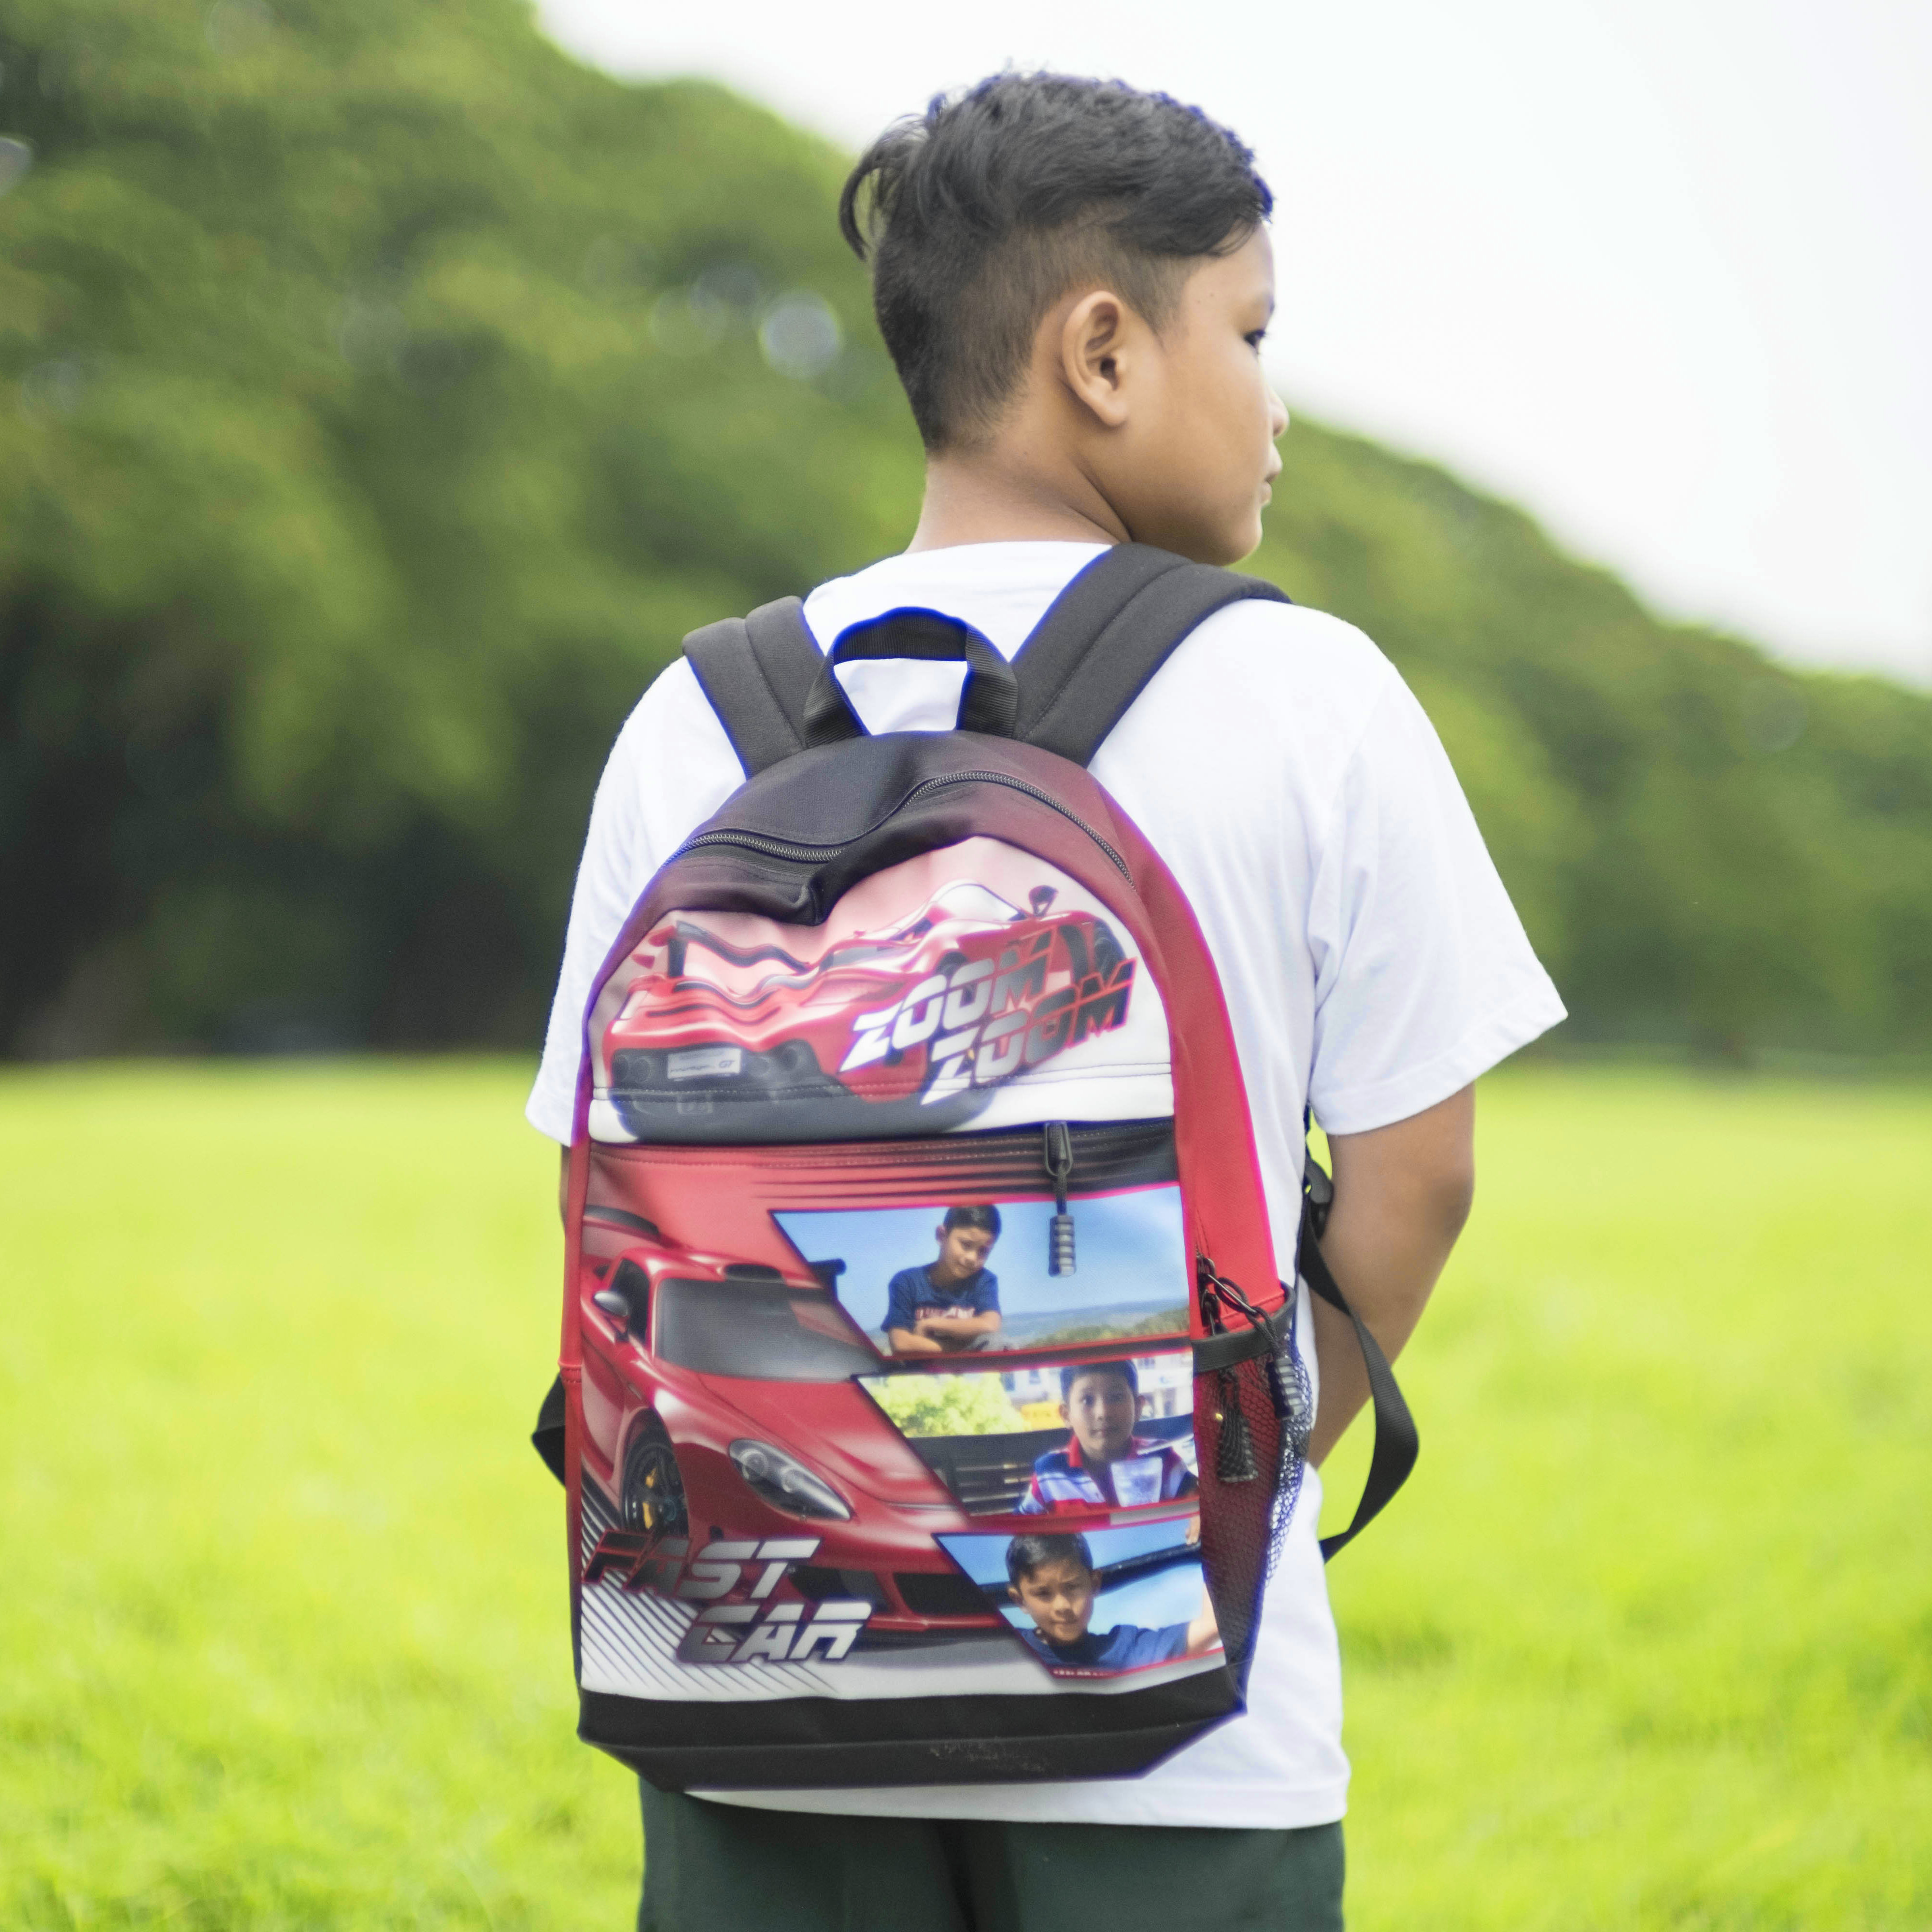 Customized Backpack - Create Your Own Personalized Backpack by Photo ... 36b9224e7ff8a